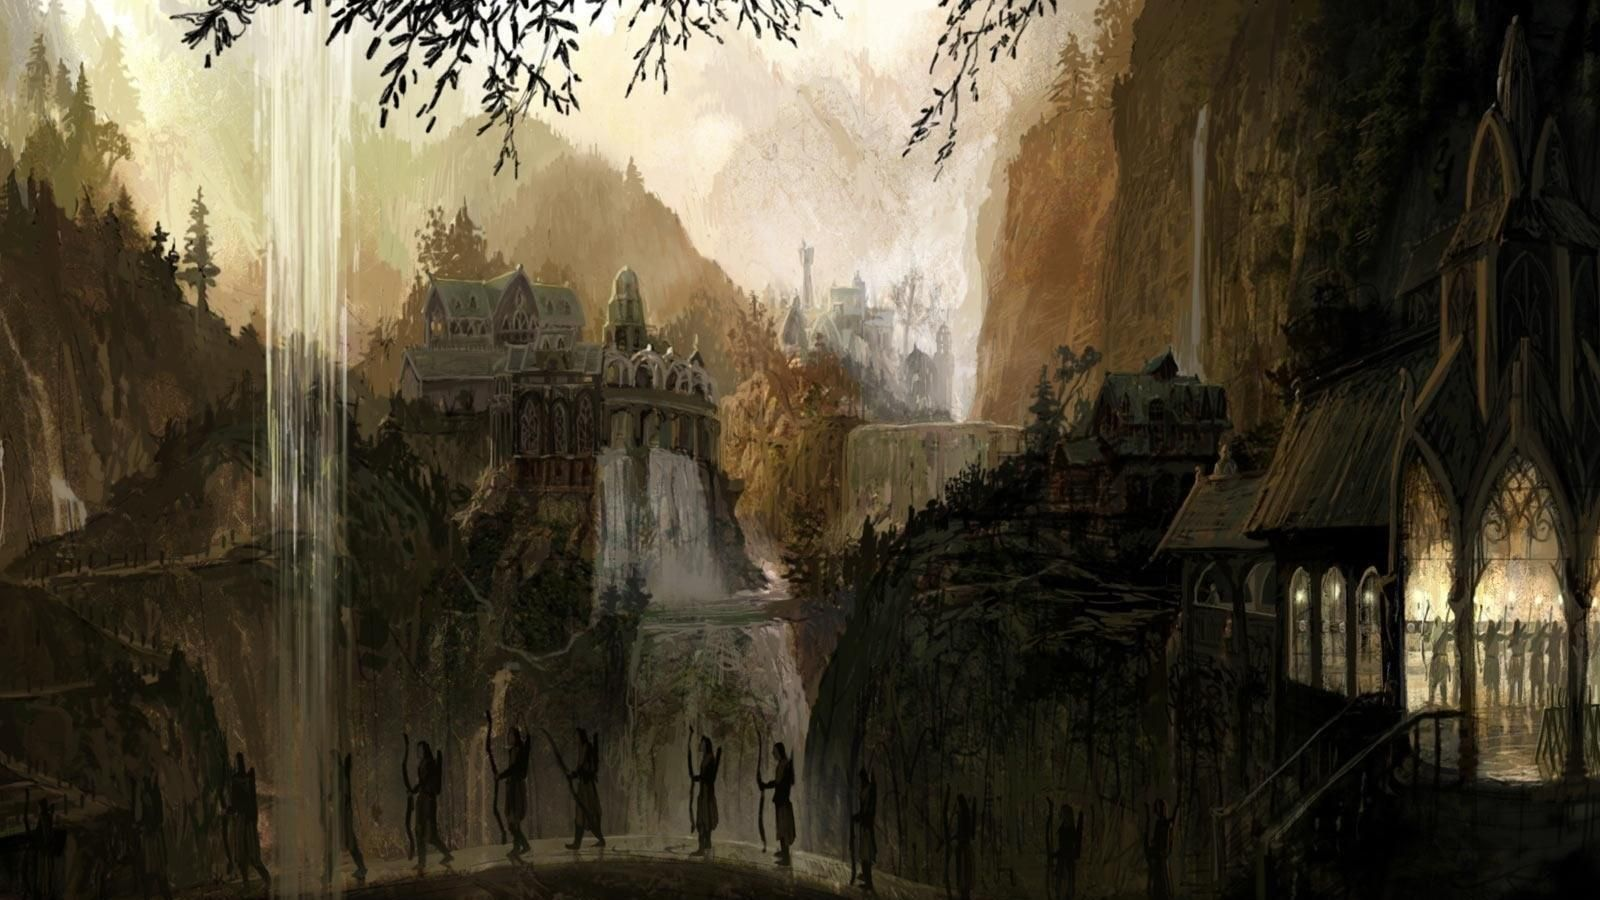 Lord Of The Rings Wallpaper High Definition S9c Lord Of The Rings Middle Earth Art Middle Earth